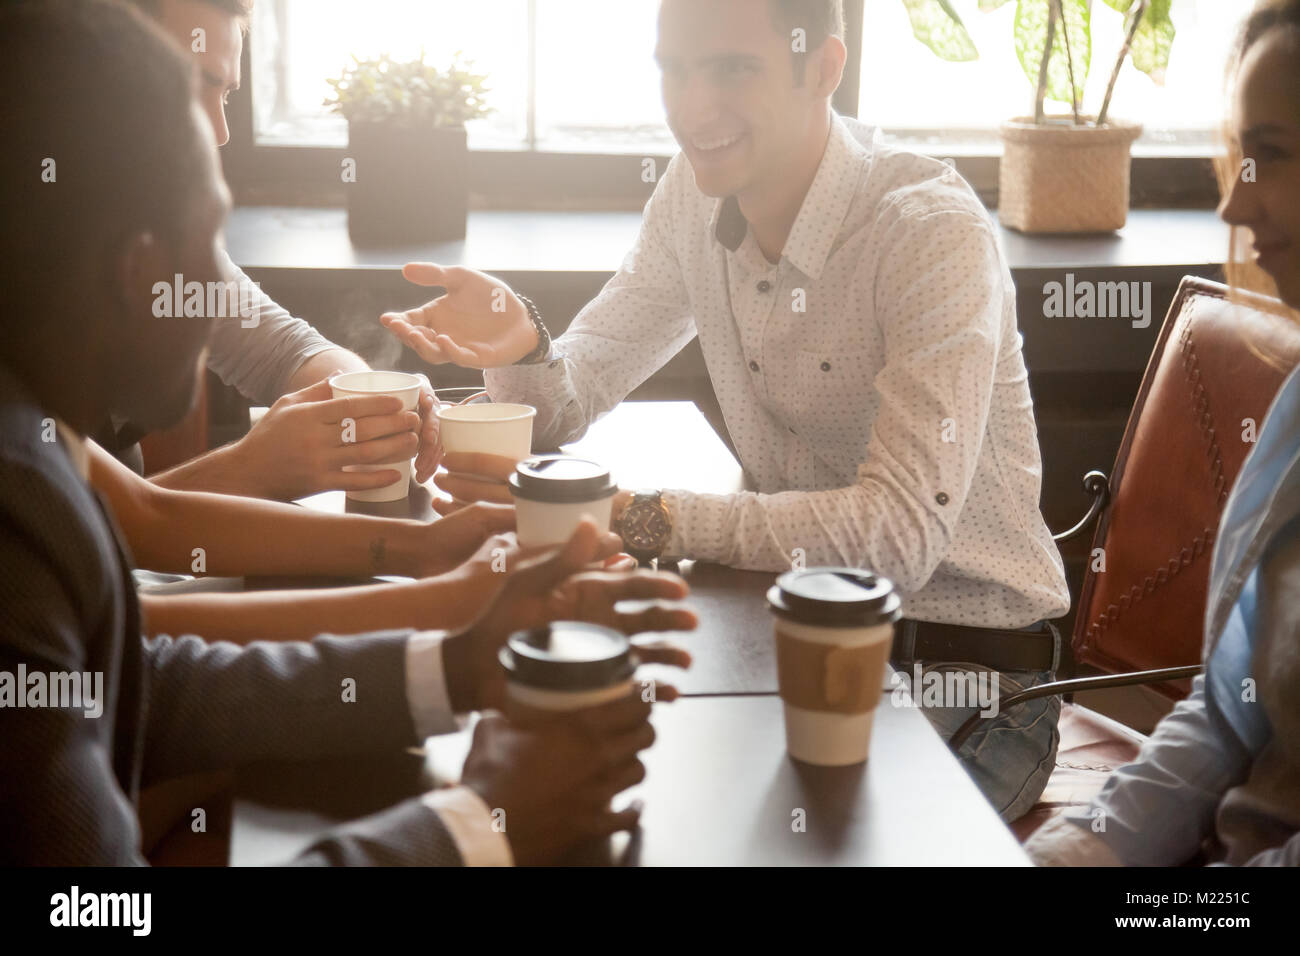 Multi ethnic group of friends drinking coffee together in cafe - Stock Image